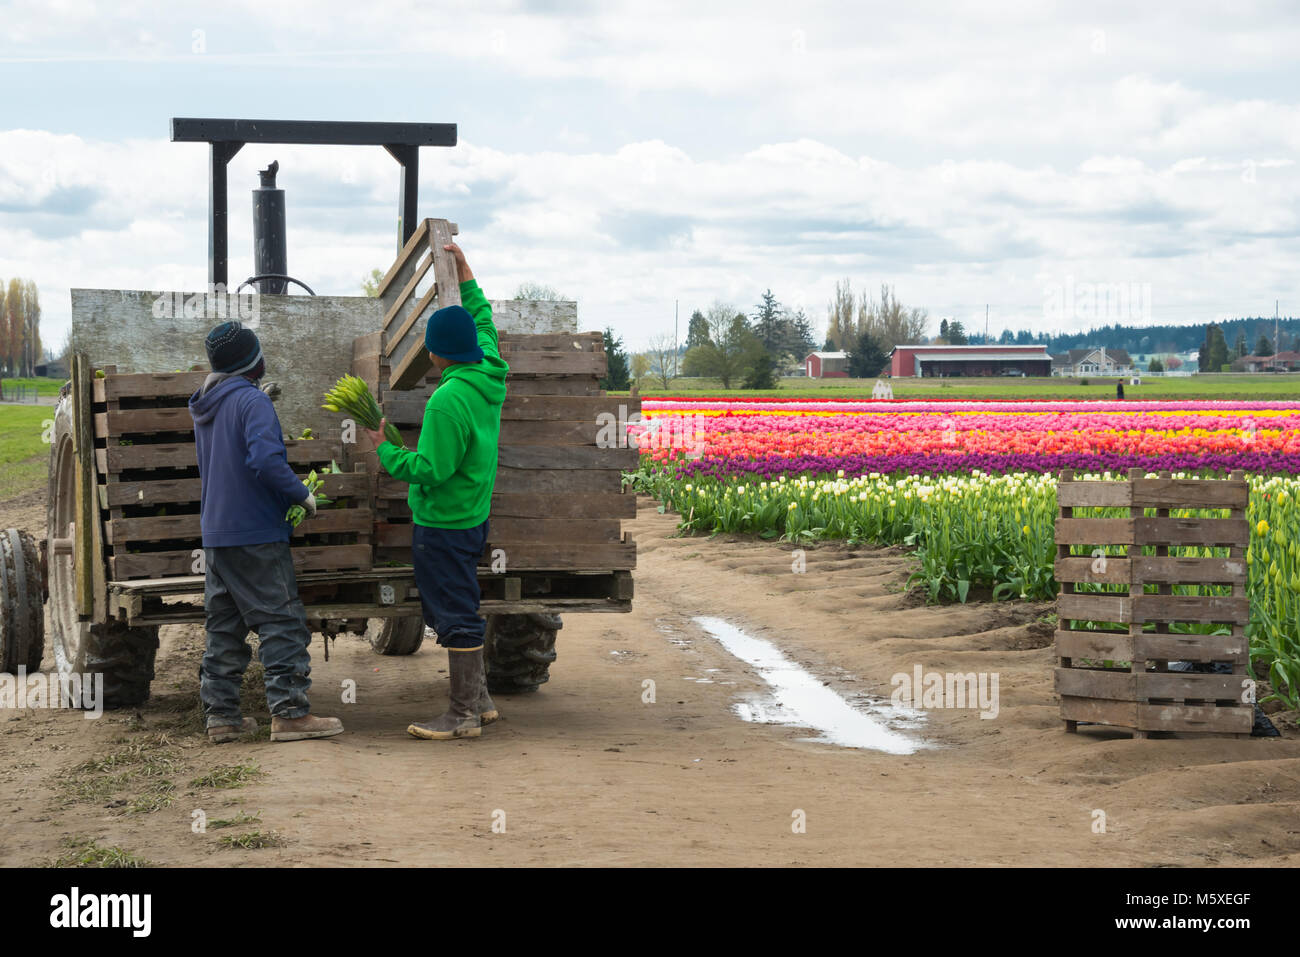 Migrant Agricultural Workers Loading Flowers on Tractor Trailer on Farm - Stock Image